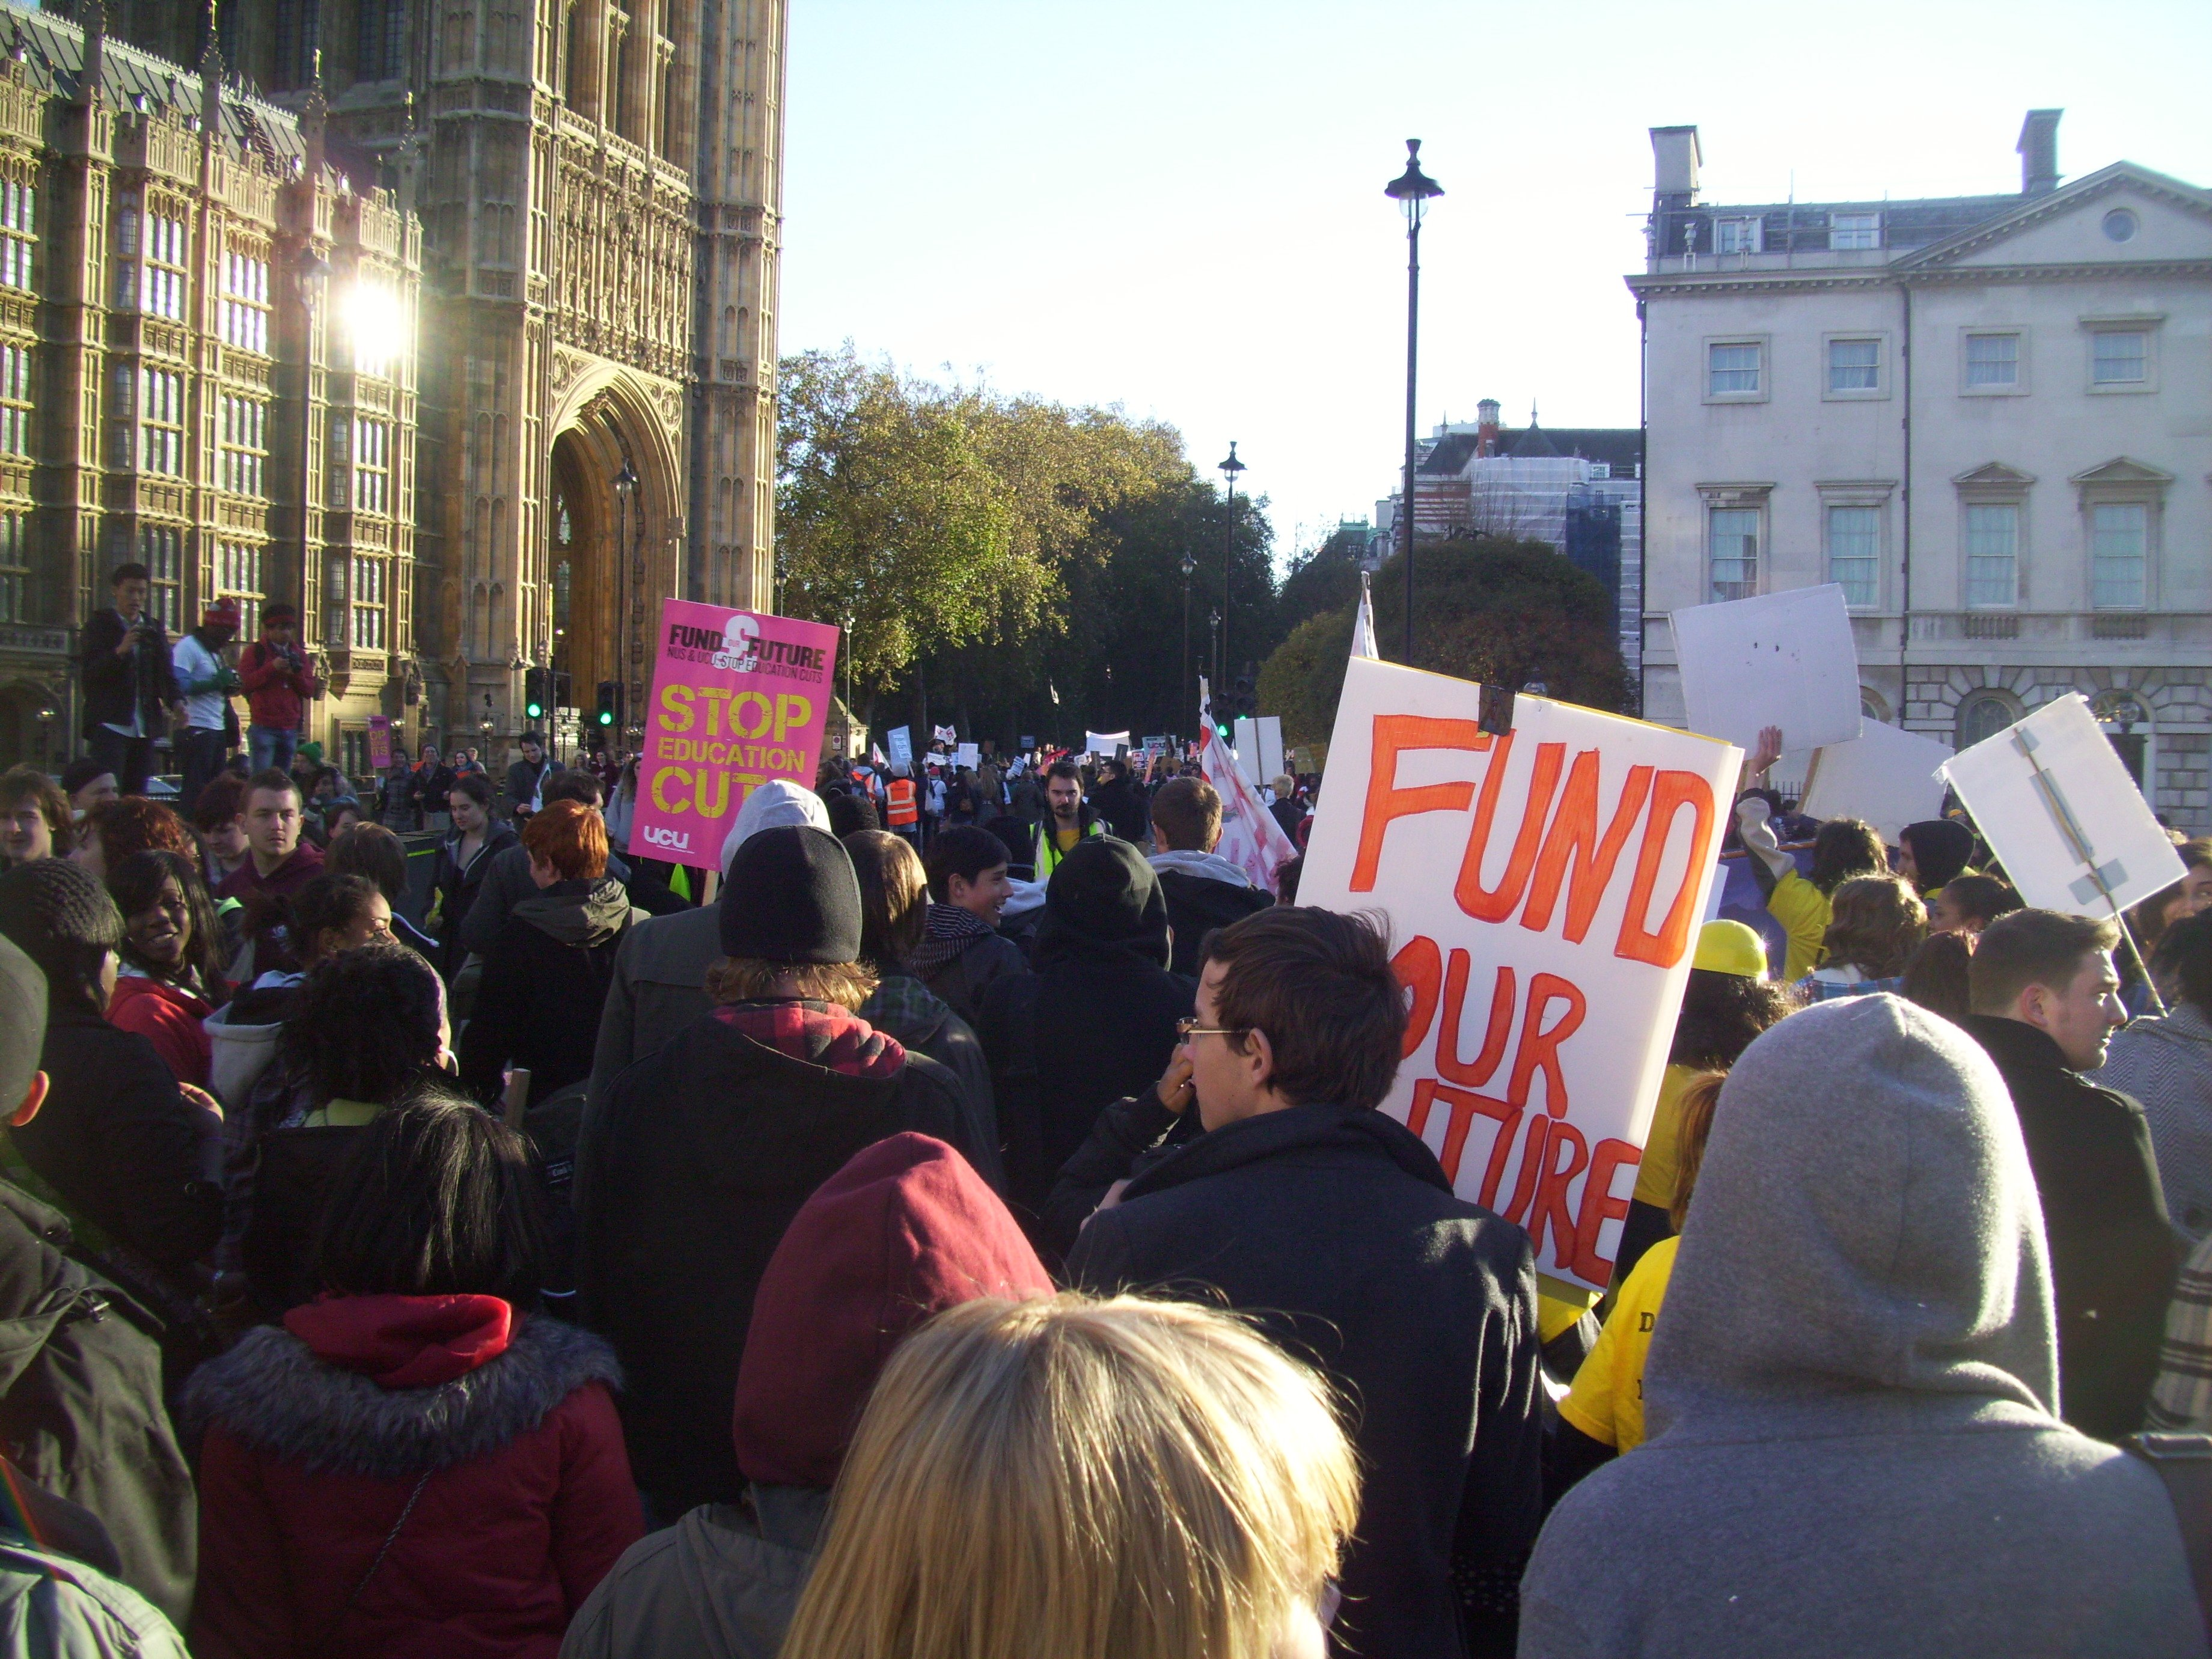 Tuition fee demonstrators marching through London in 2010